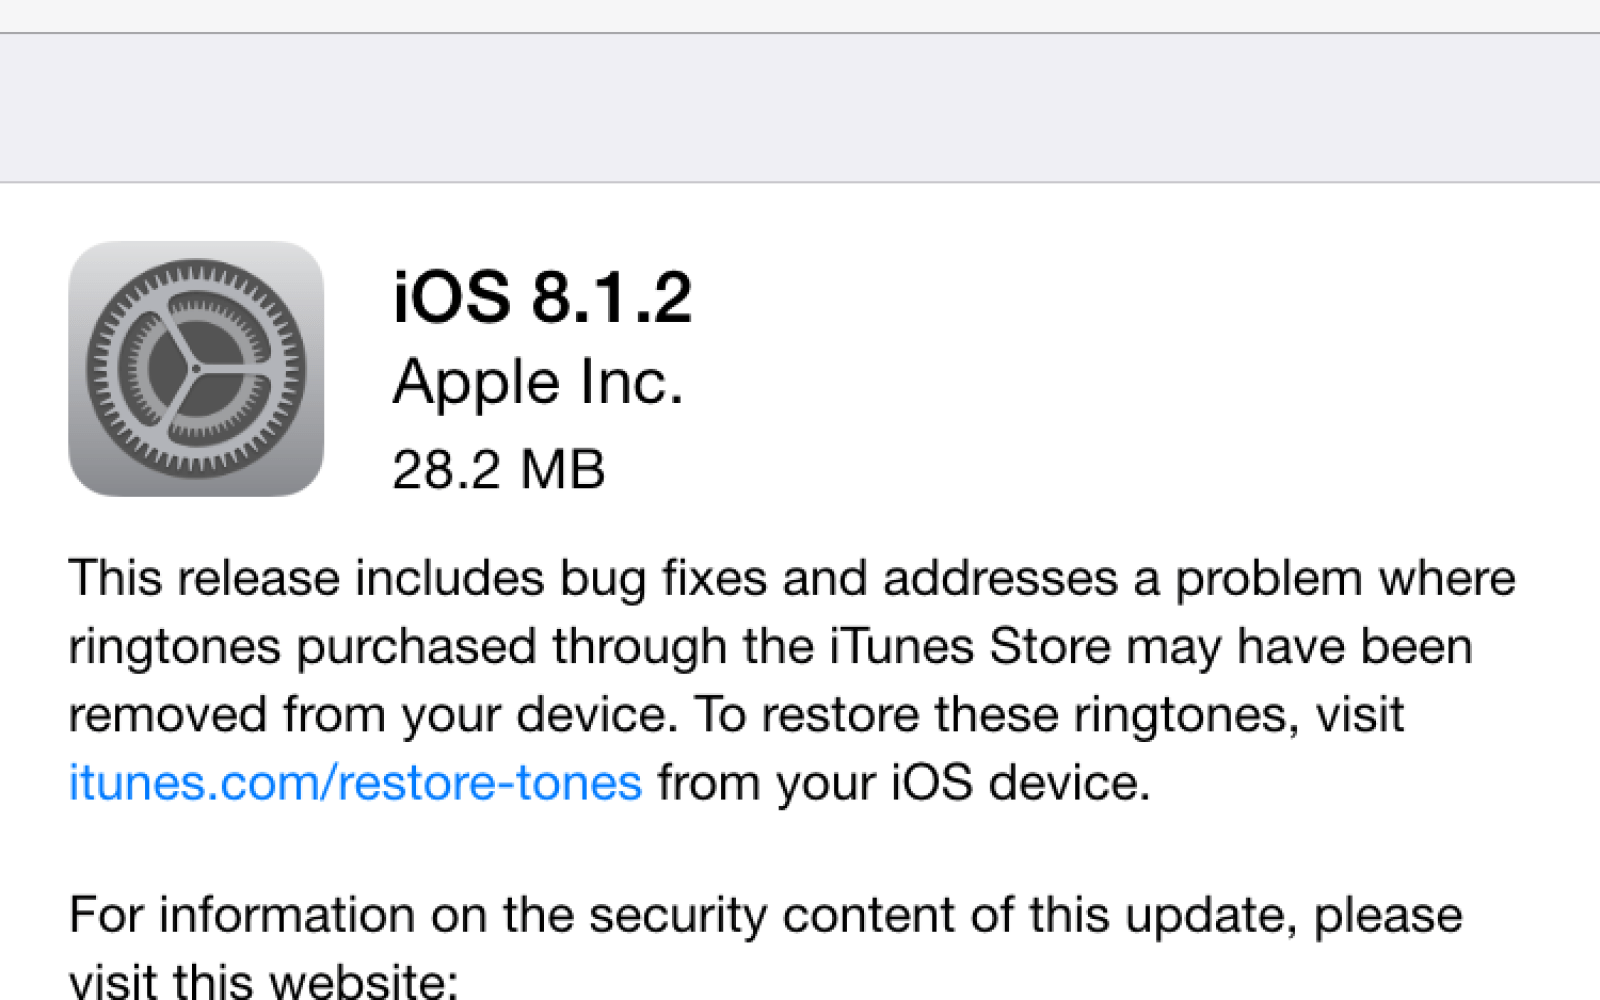 Apple releases iOS 8 1 2 with fixes for bugs including